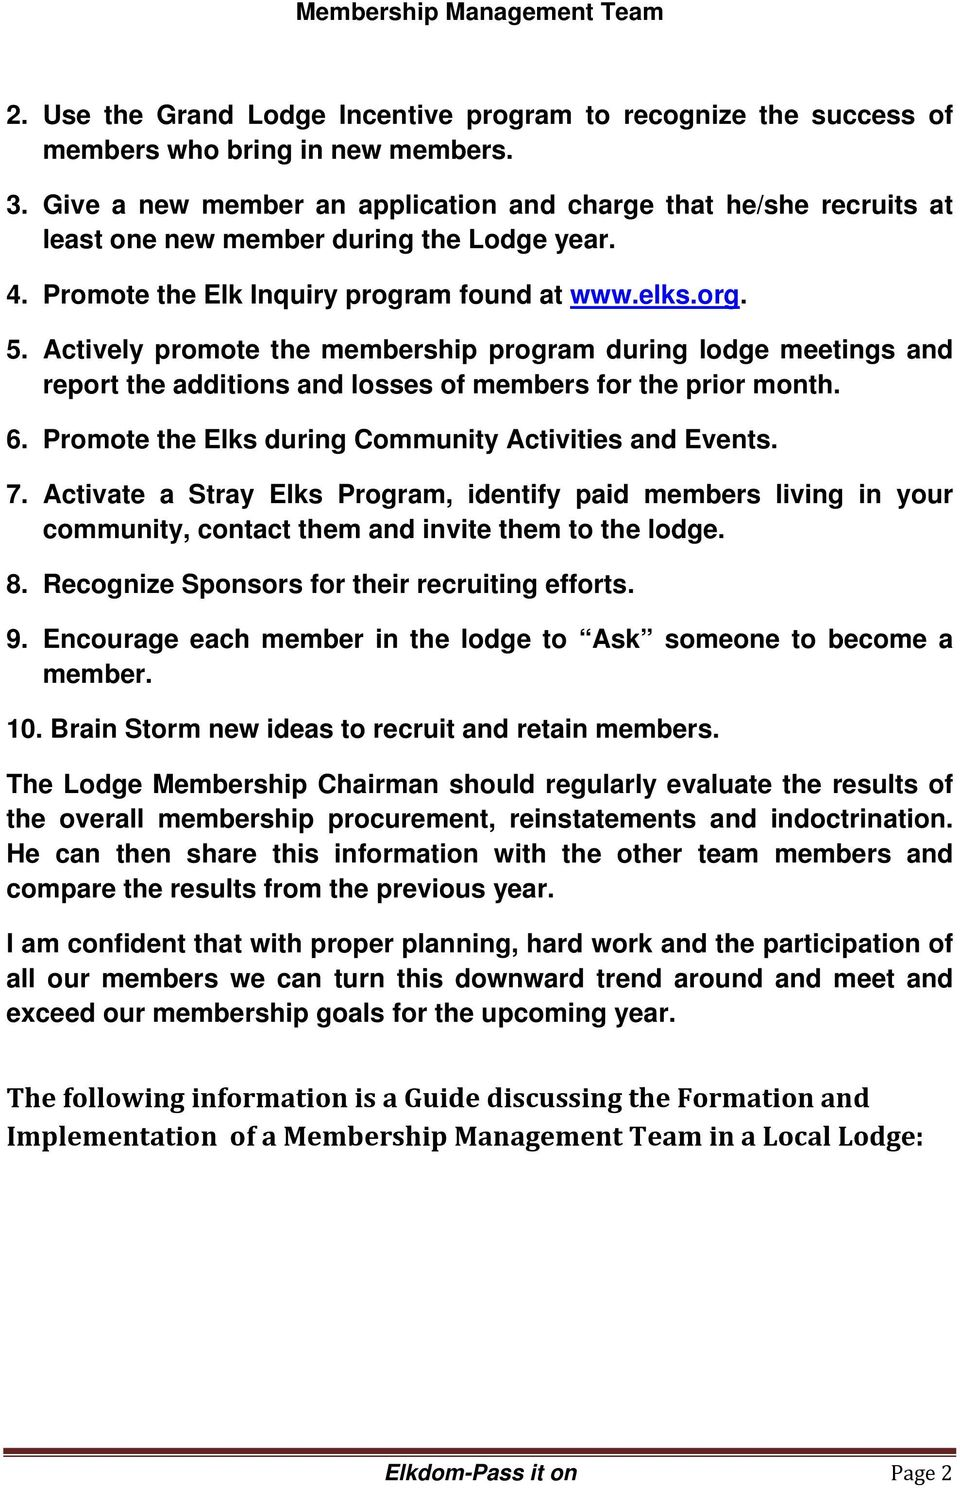 Actively promote the membership program during lodge meetings and report the additions and losses of members for the prior month. 6. Promote the Elks during Community Activities and Events. 7.